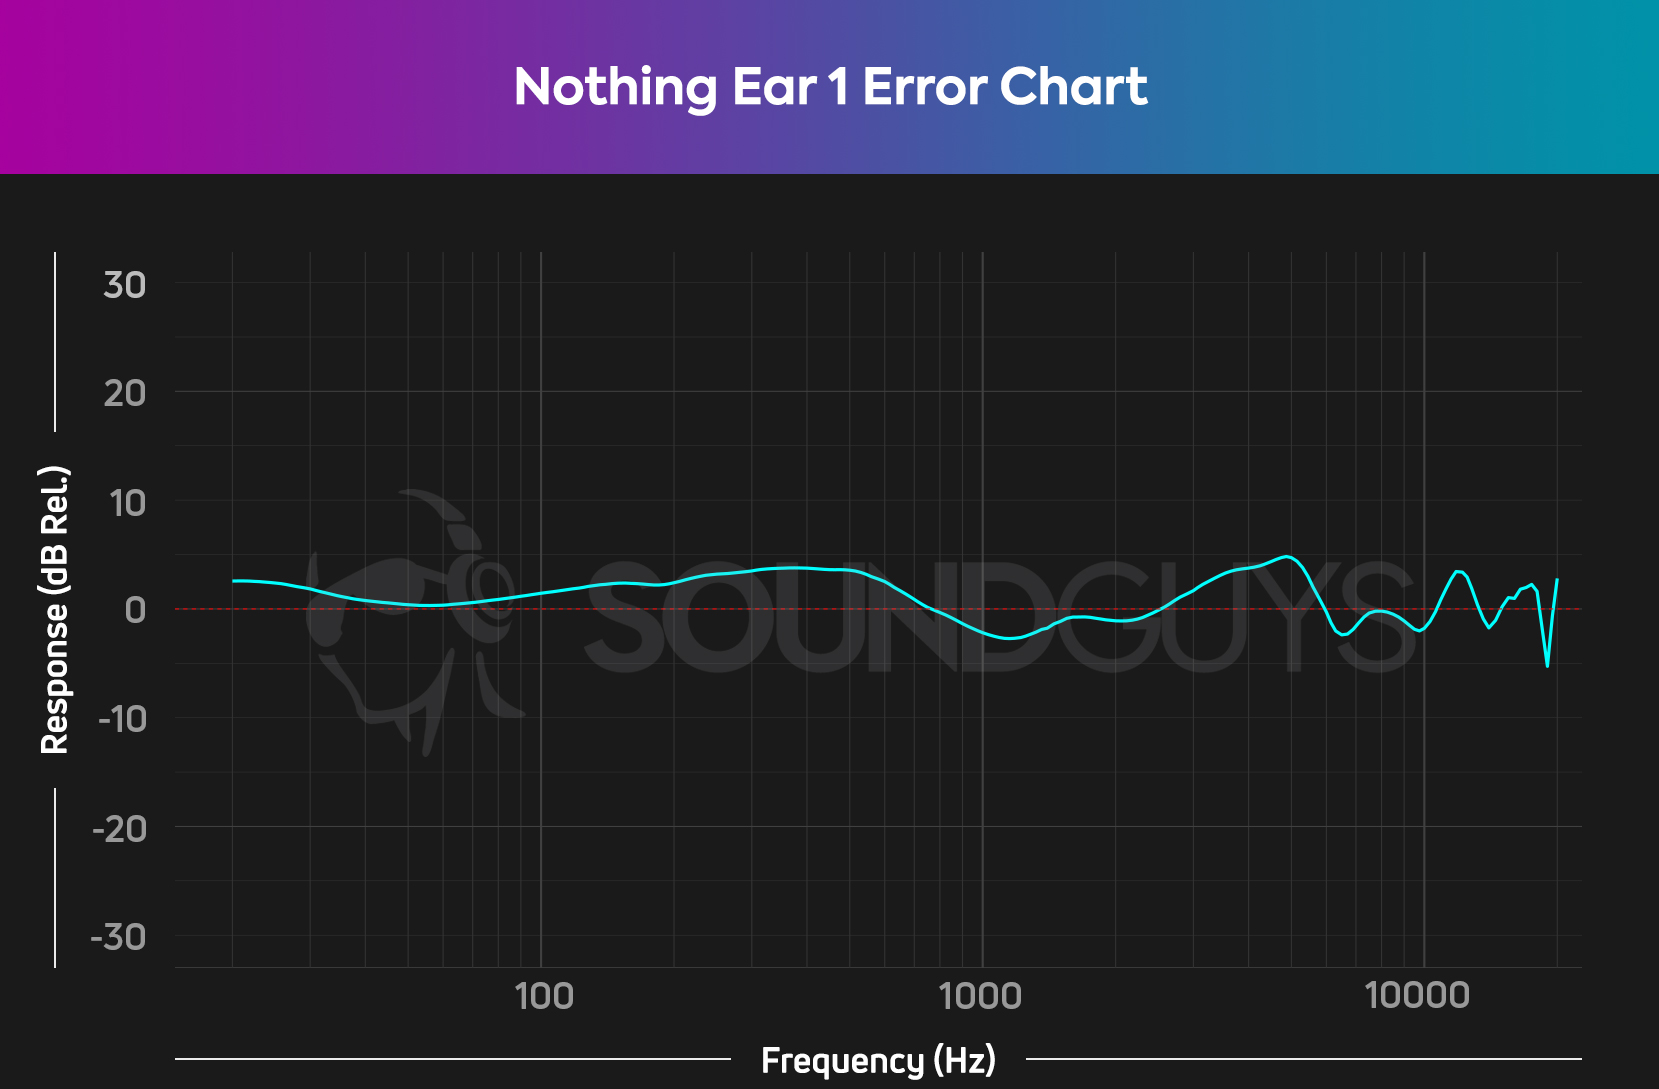 Chart showing difference between Nothing Ear 1 frequency response and our consumer curve.